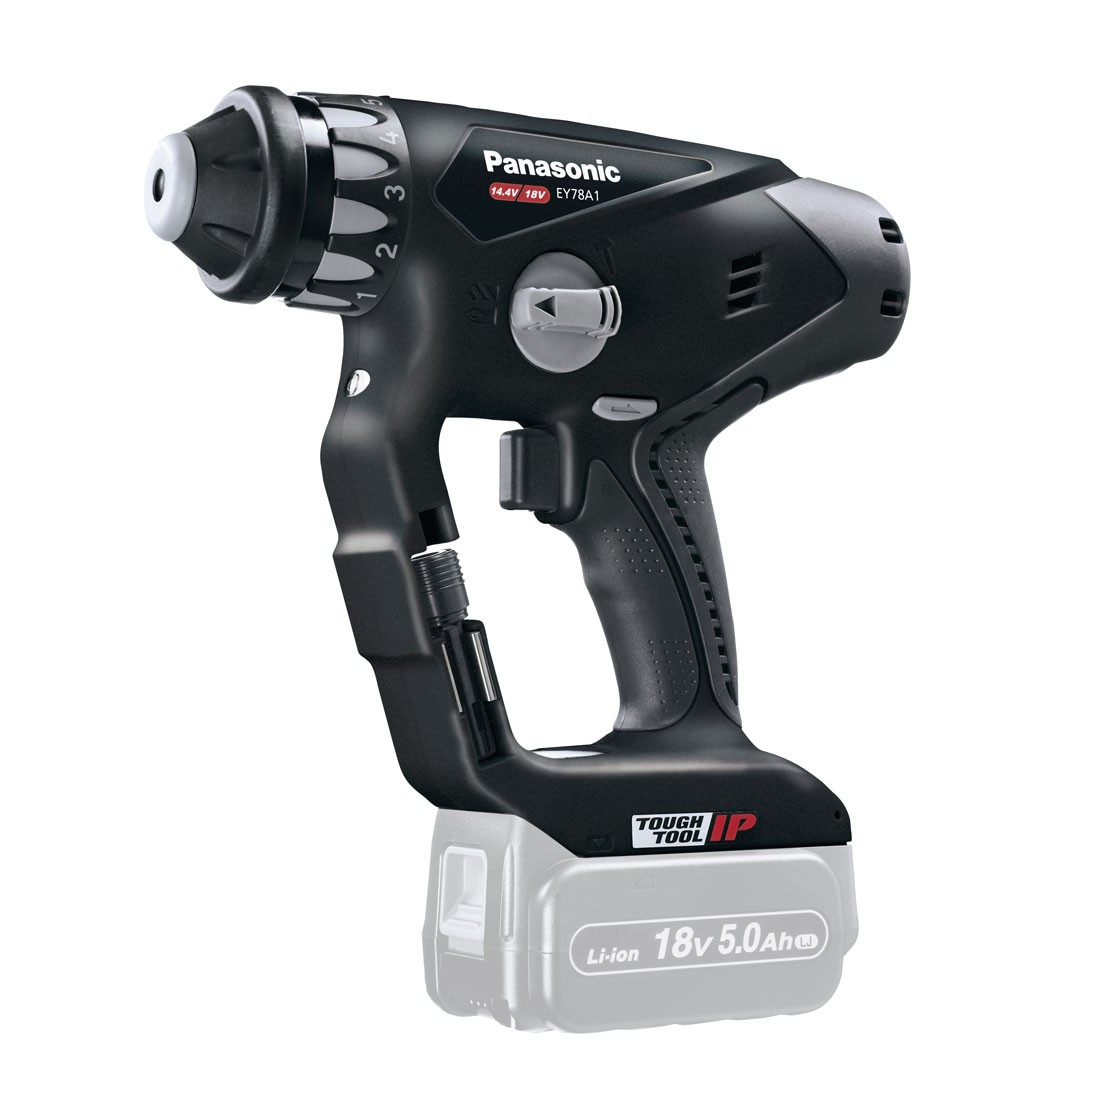 Panasonic EY78A1X32 Dual Voltage 14.4v/18v SDS+ Hammer Drill Driver Body Only